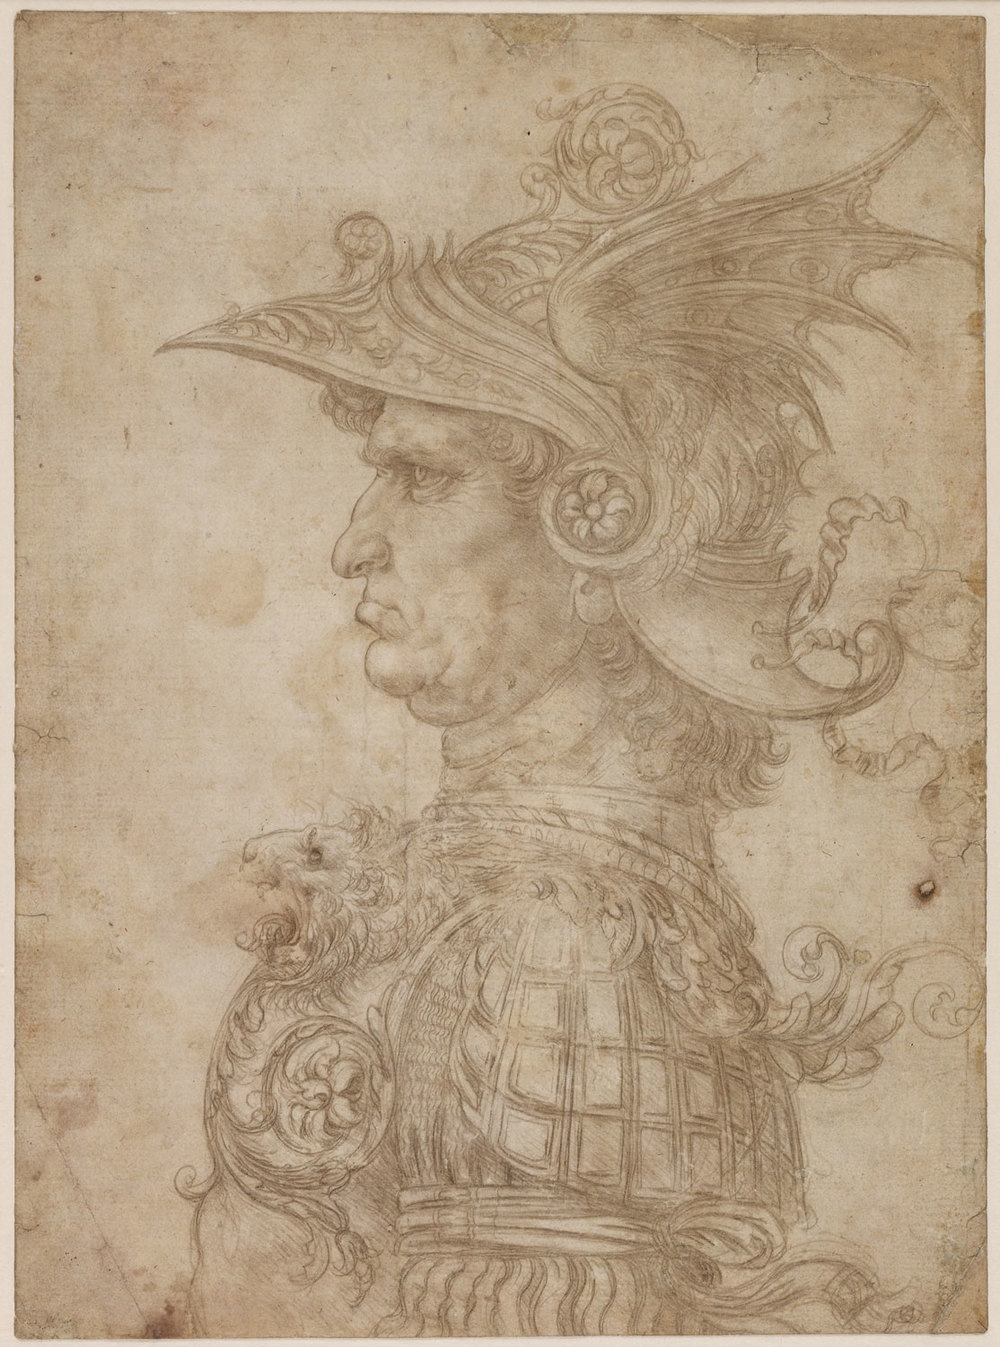 Leonardo da Vinci,  A Bust of a Warrior,  c. 1475/1480 silverpoint on cream prepared paper On loan from The British Museum, London © The Trustees of The British Museum, London